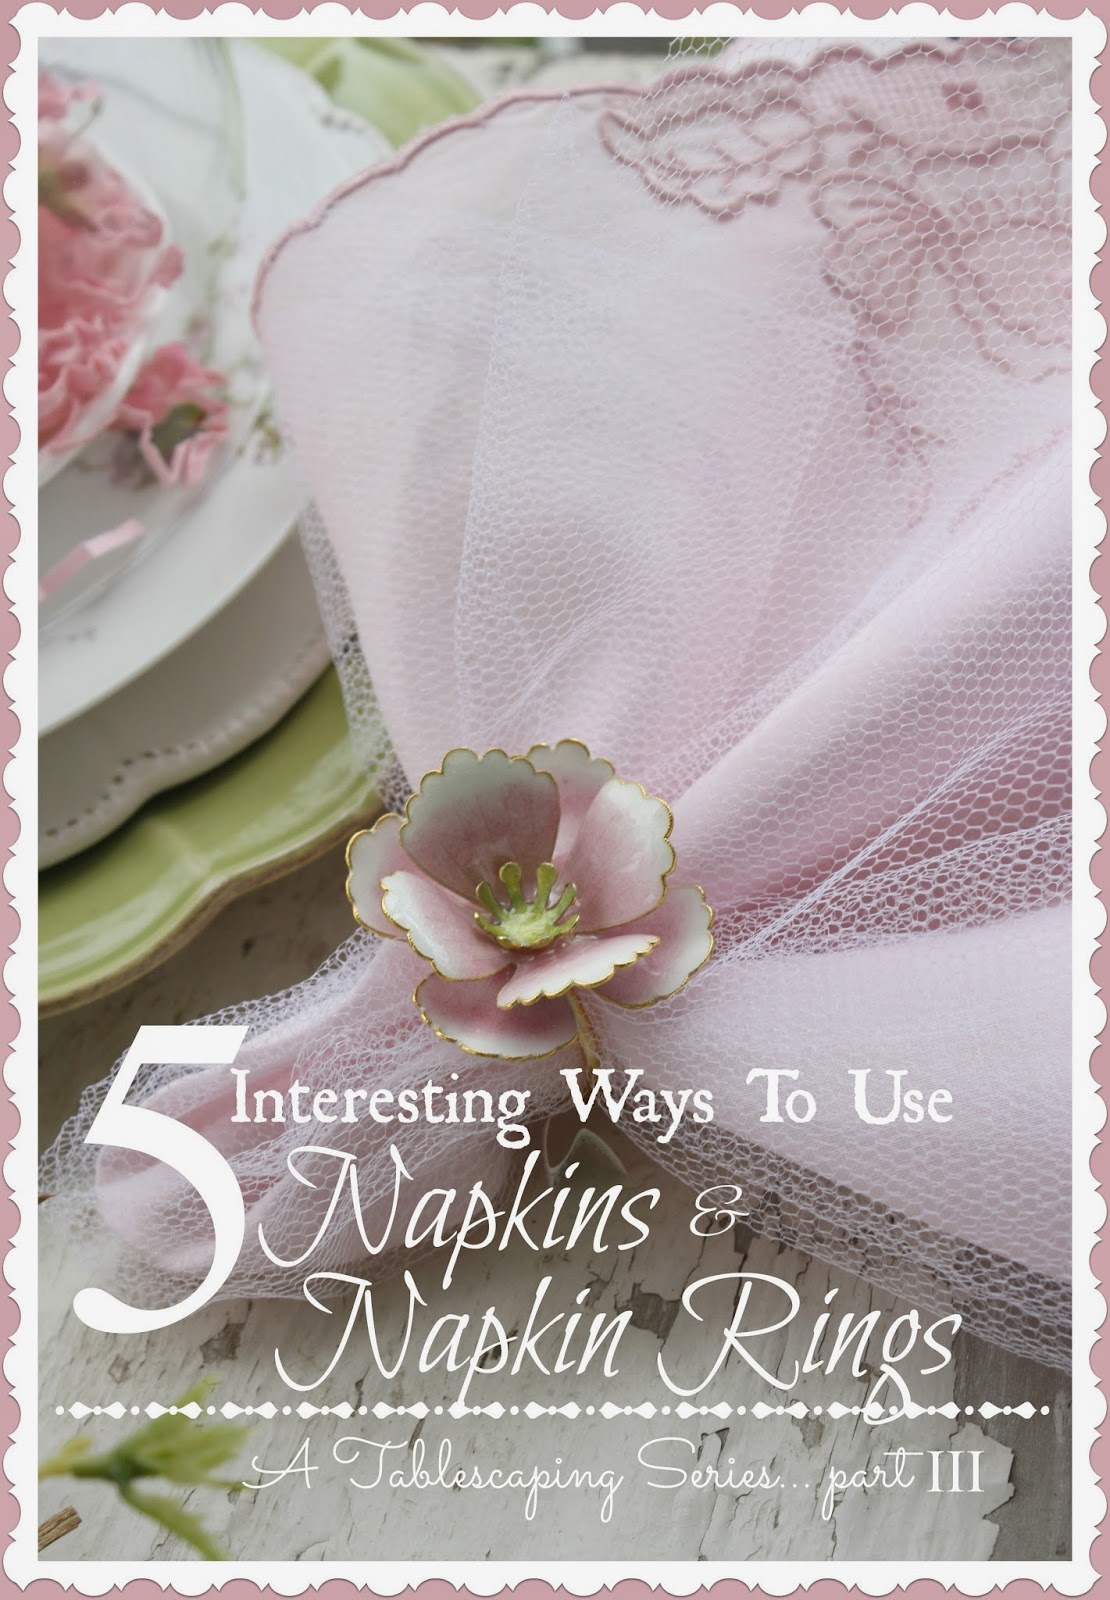 5 Interesting Ways To Use Napkins And Napkin Rings A Tablescape